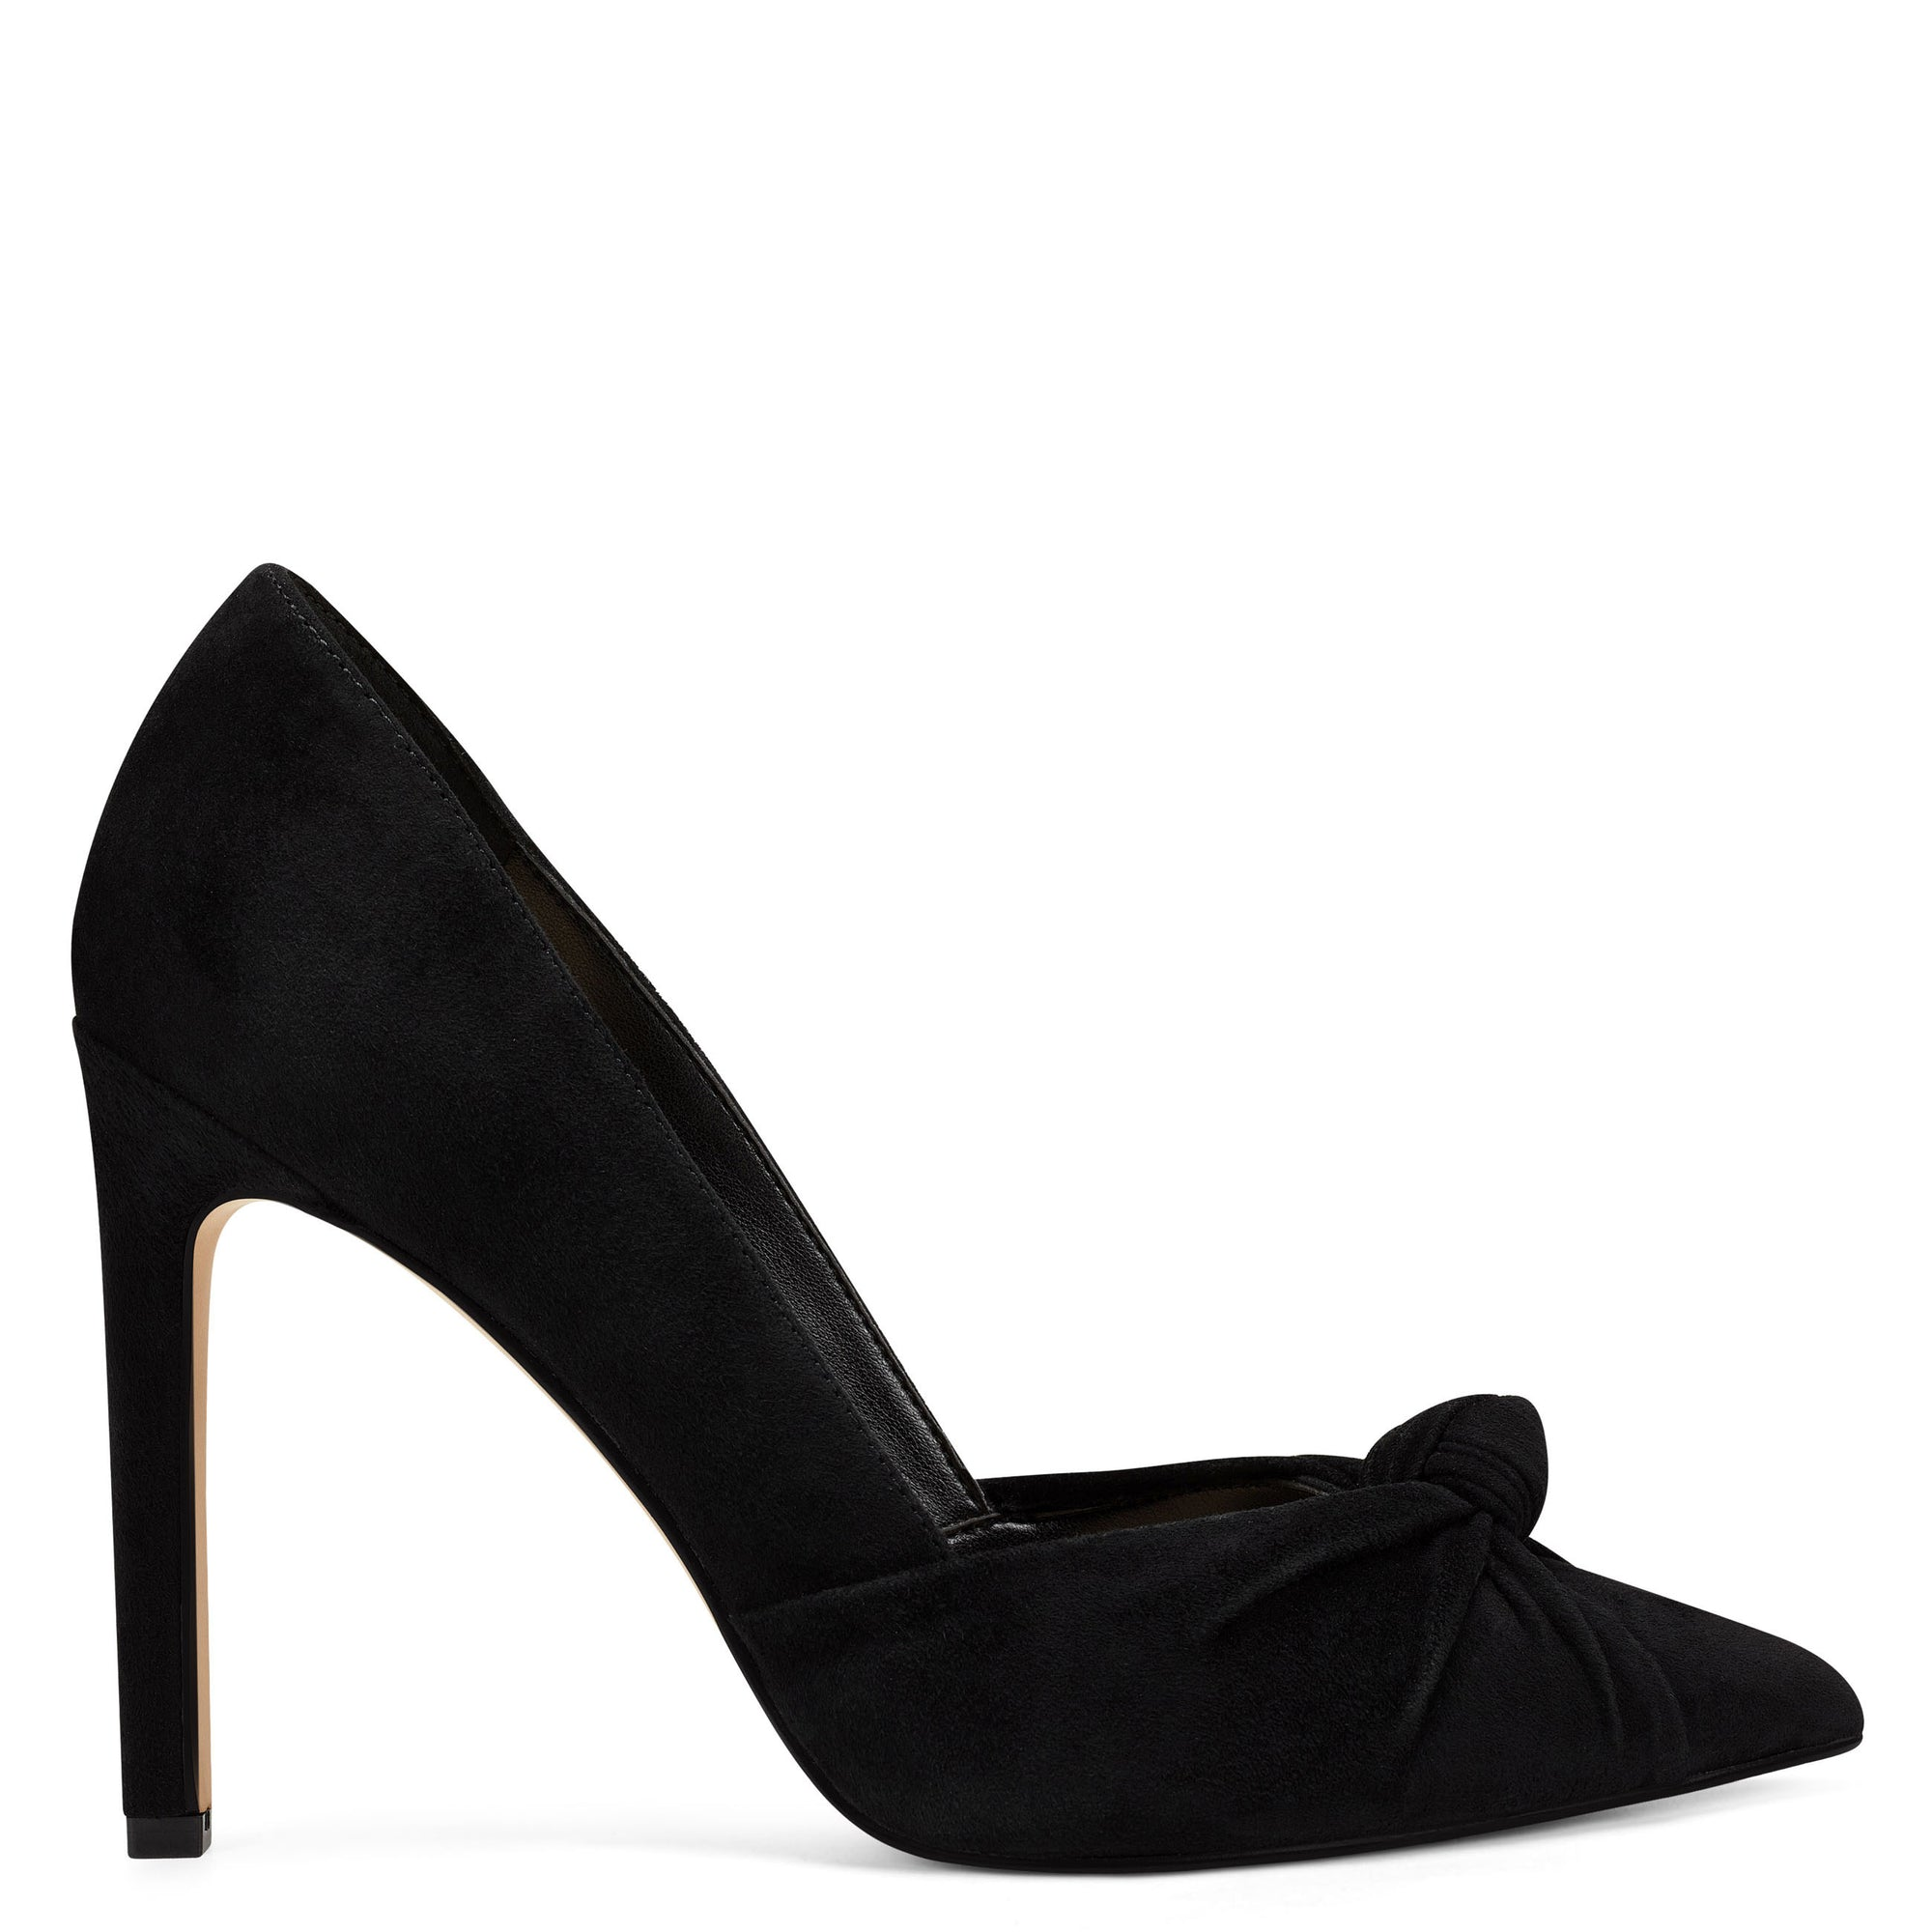 true-dress-pumps-in-black-suede